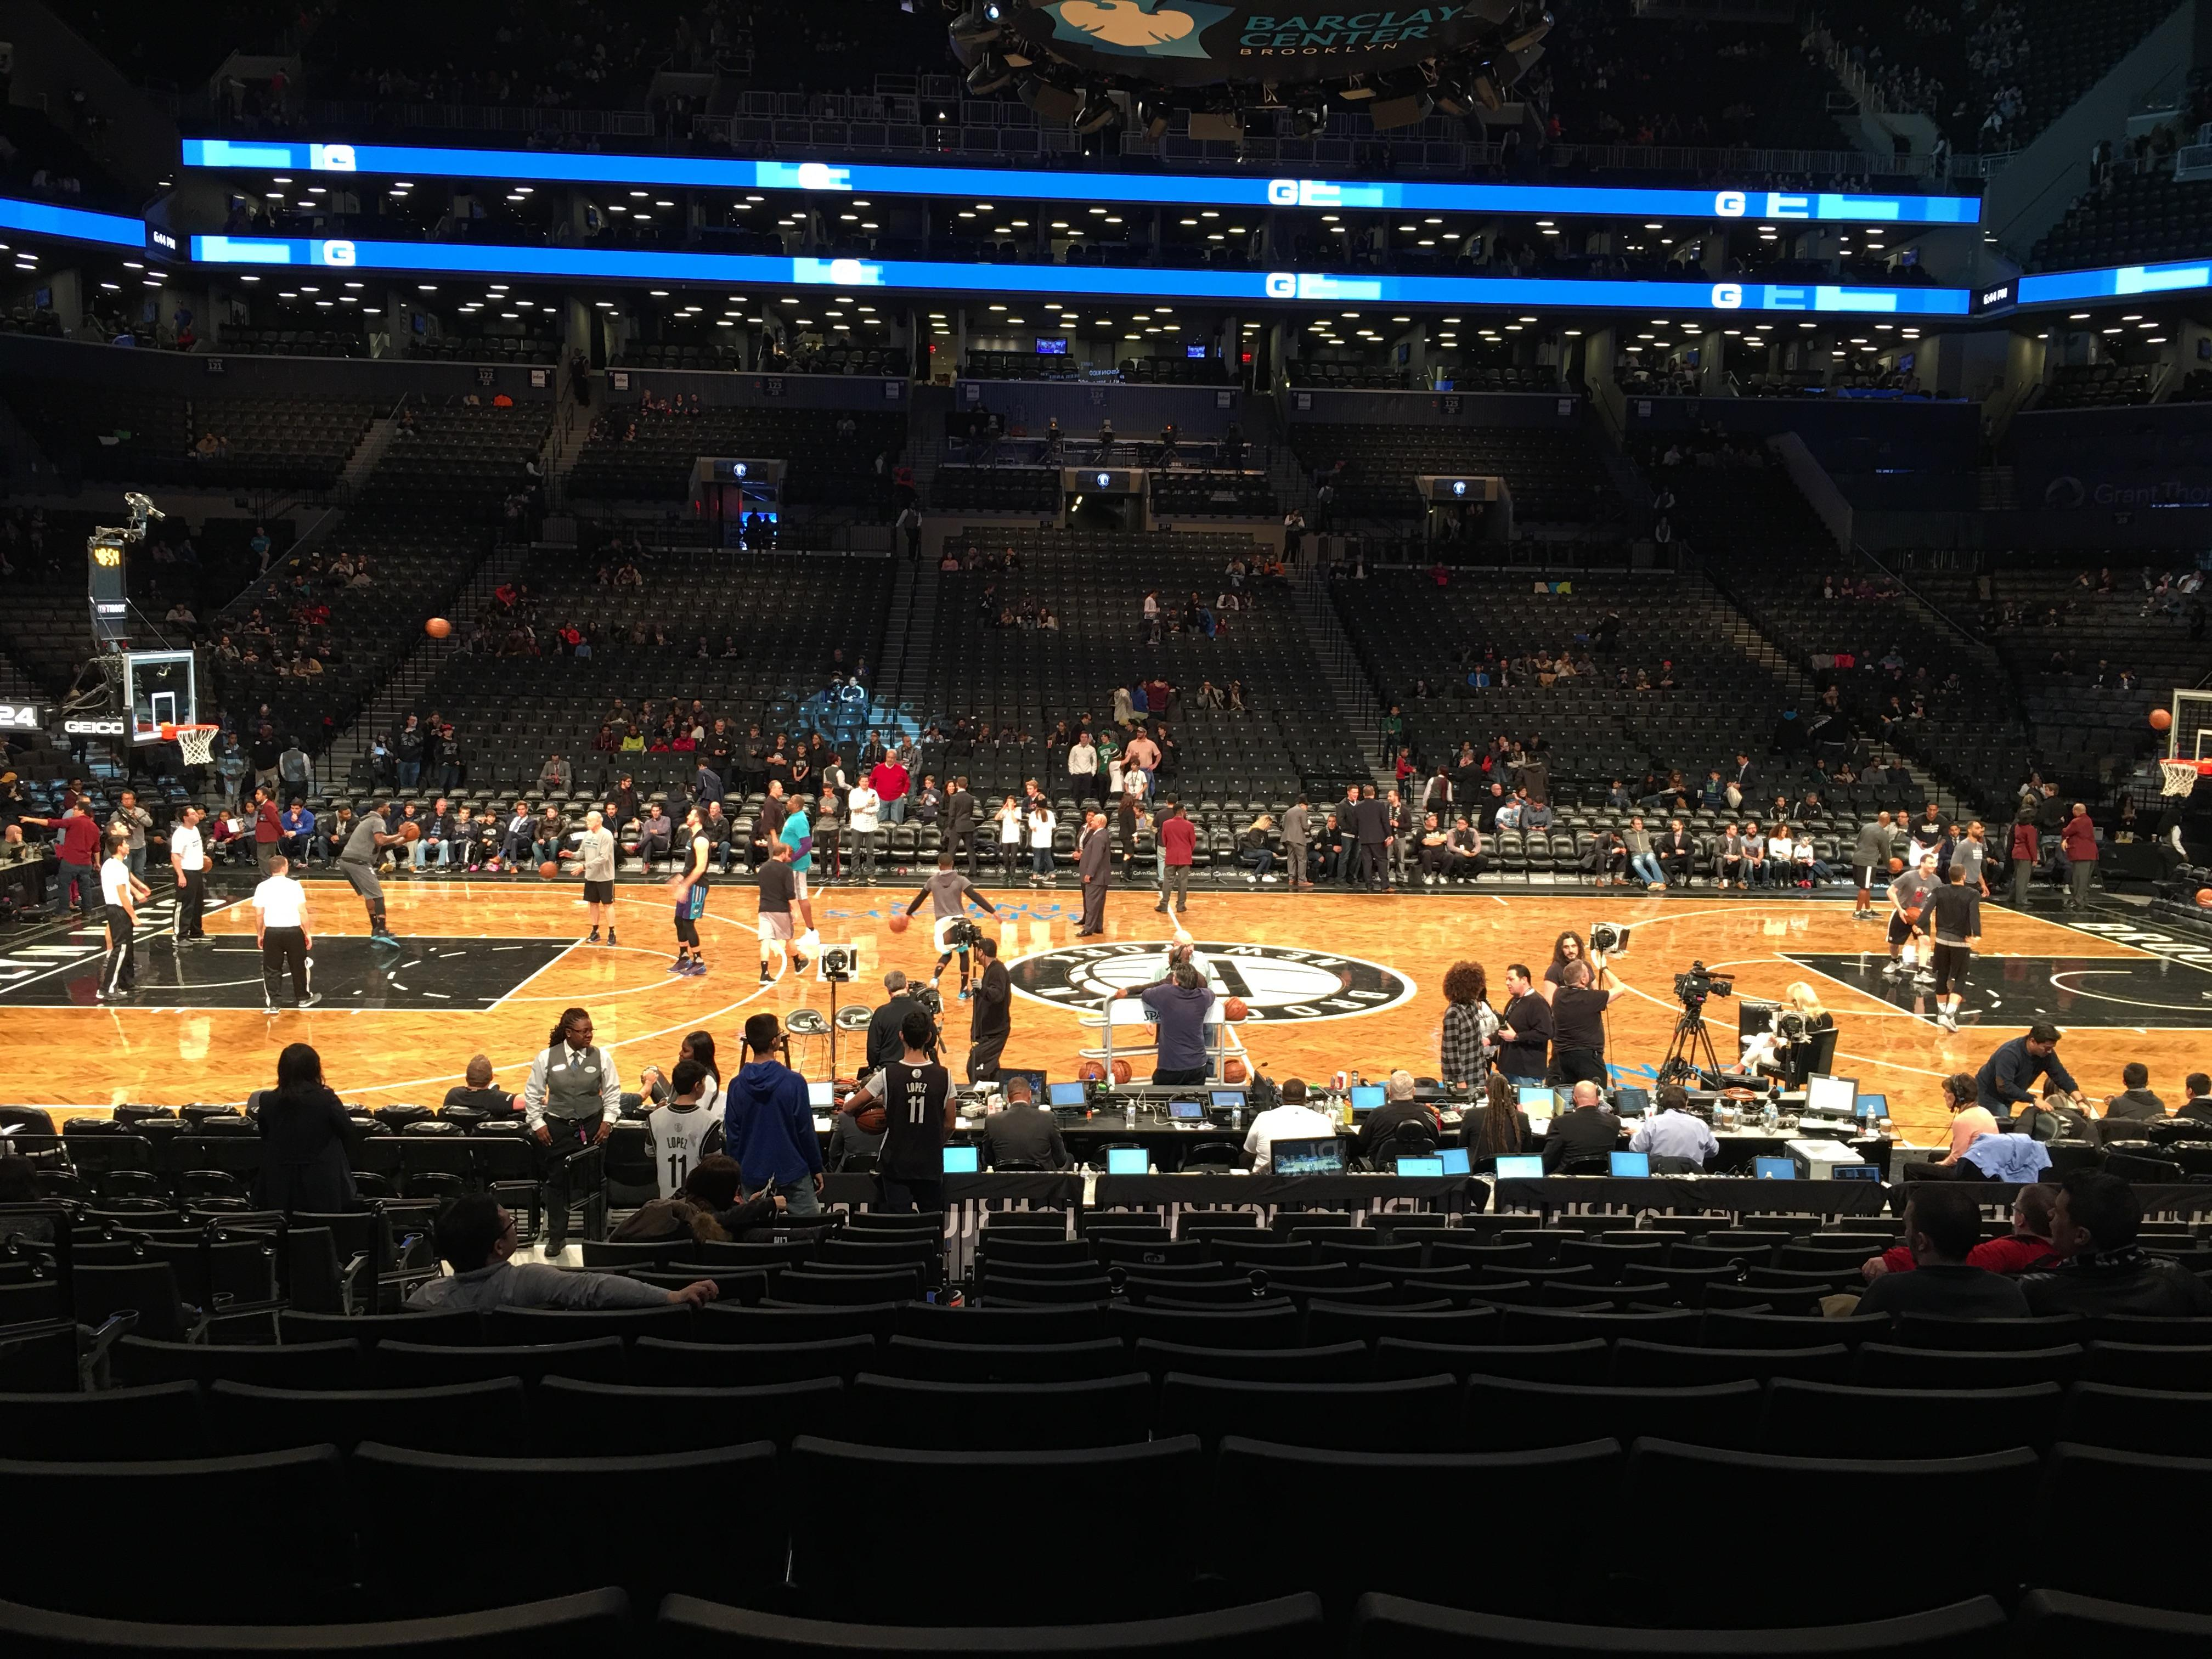 Barclays center Section 8 Row 13 Seat 15